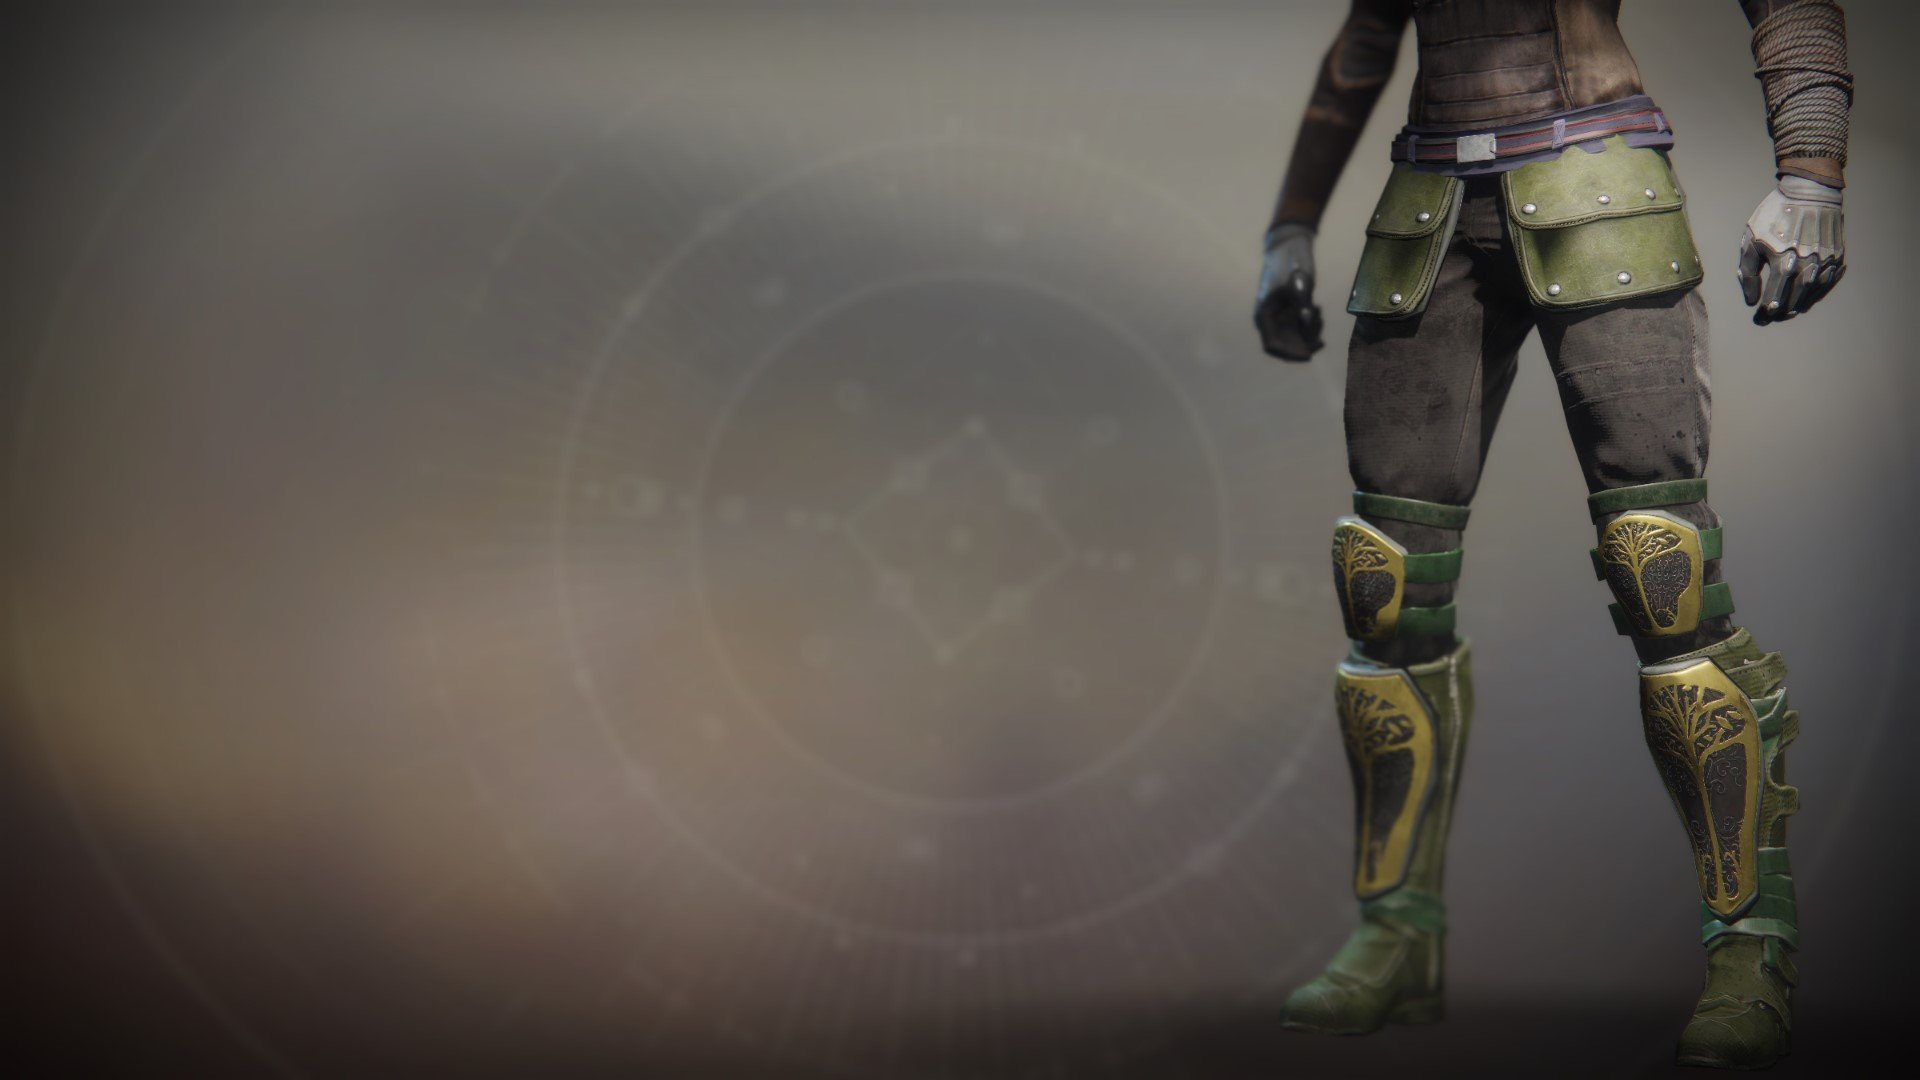 An in-game render of the Iron Truage Boots.